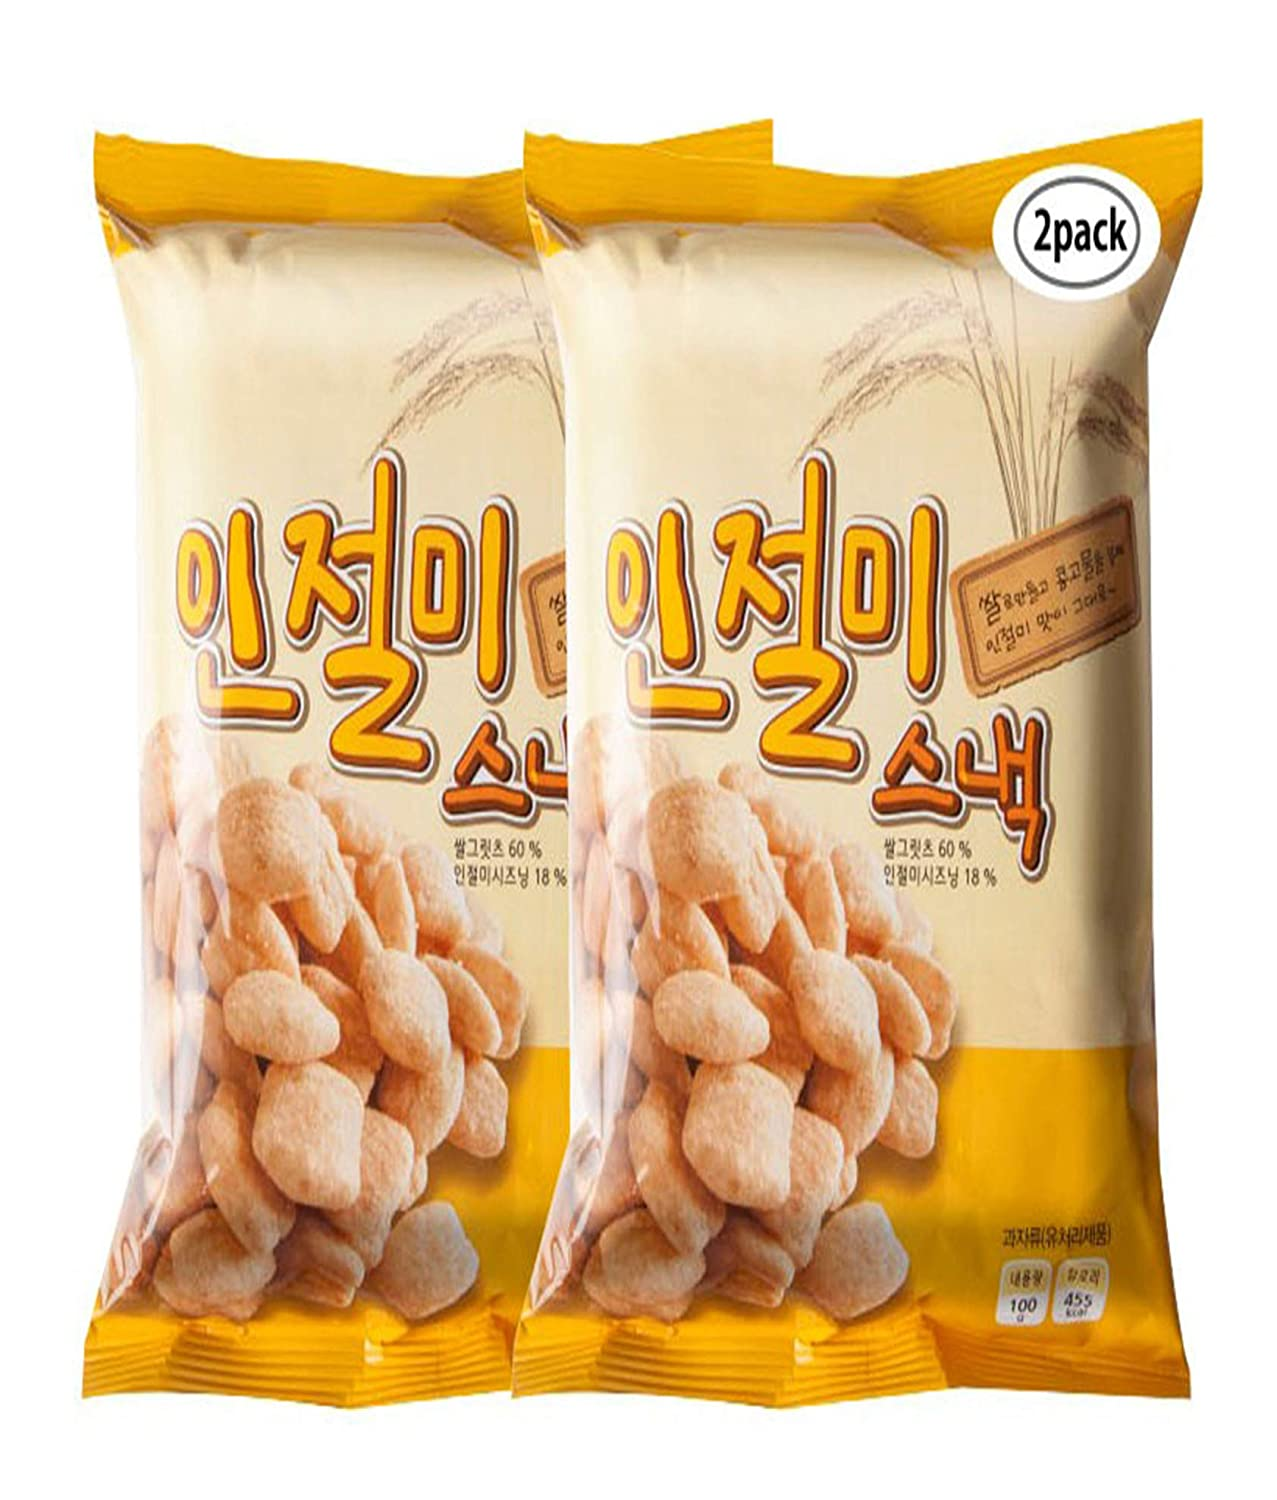 Woori Food Injeolmi Premium Korean Food Rice Cake Korean Snacks 7.05oz(200g) Making with Korean Rice and Not Fry In Oil (Pack of 2) 인절미 스낵